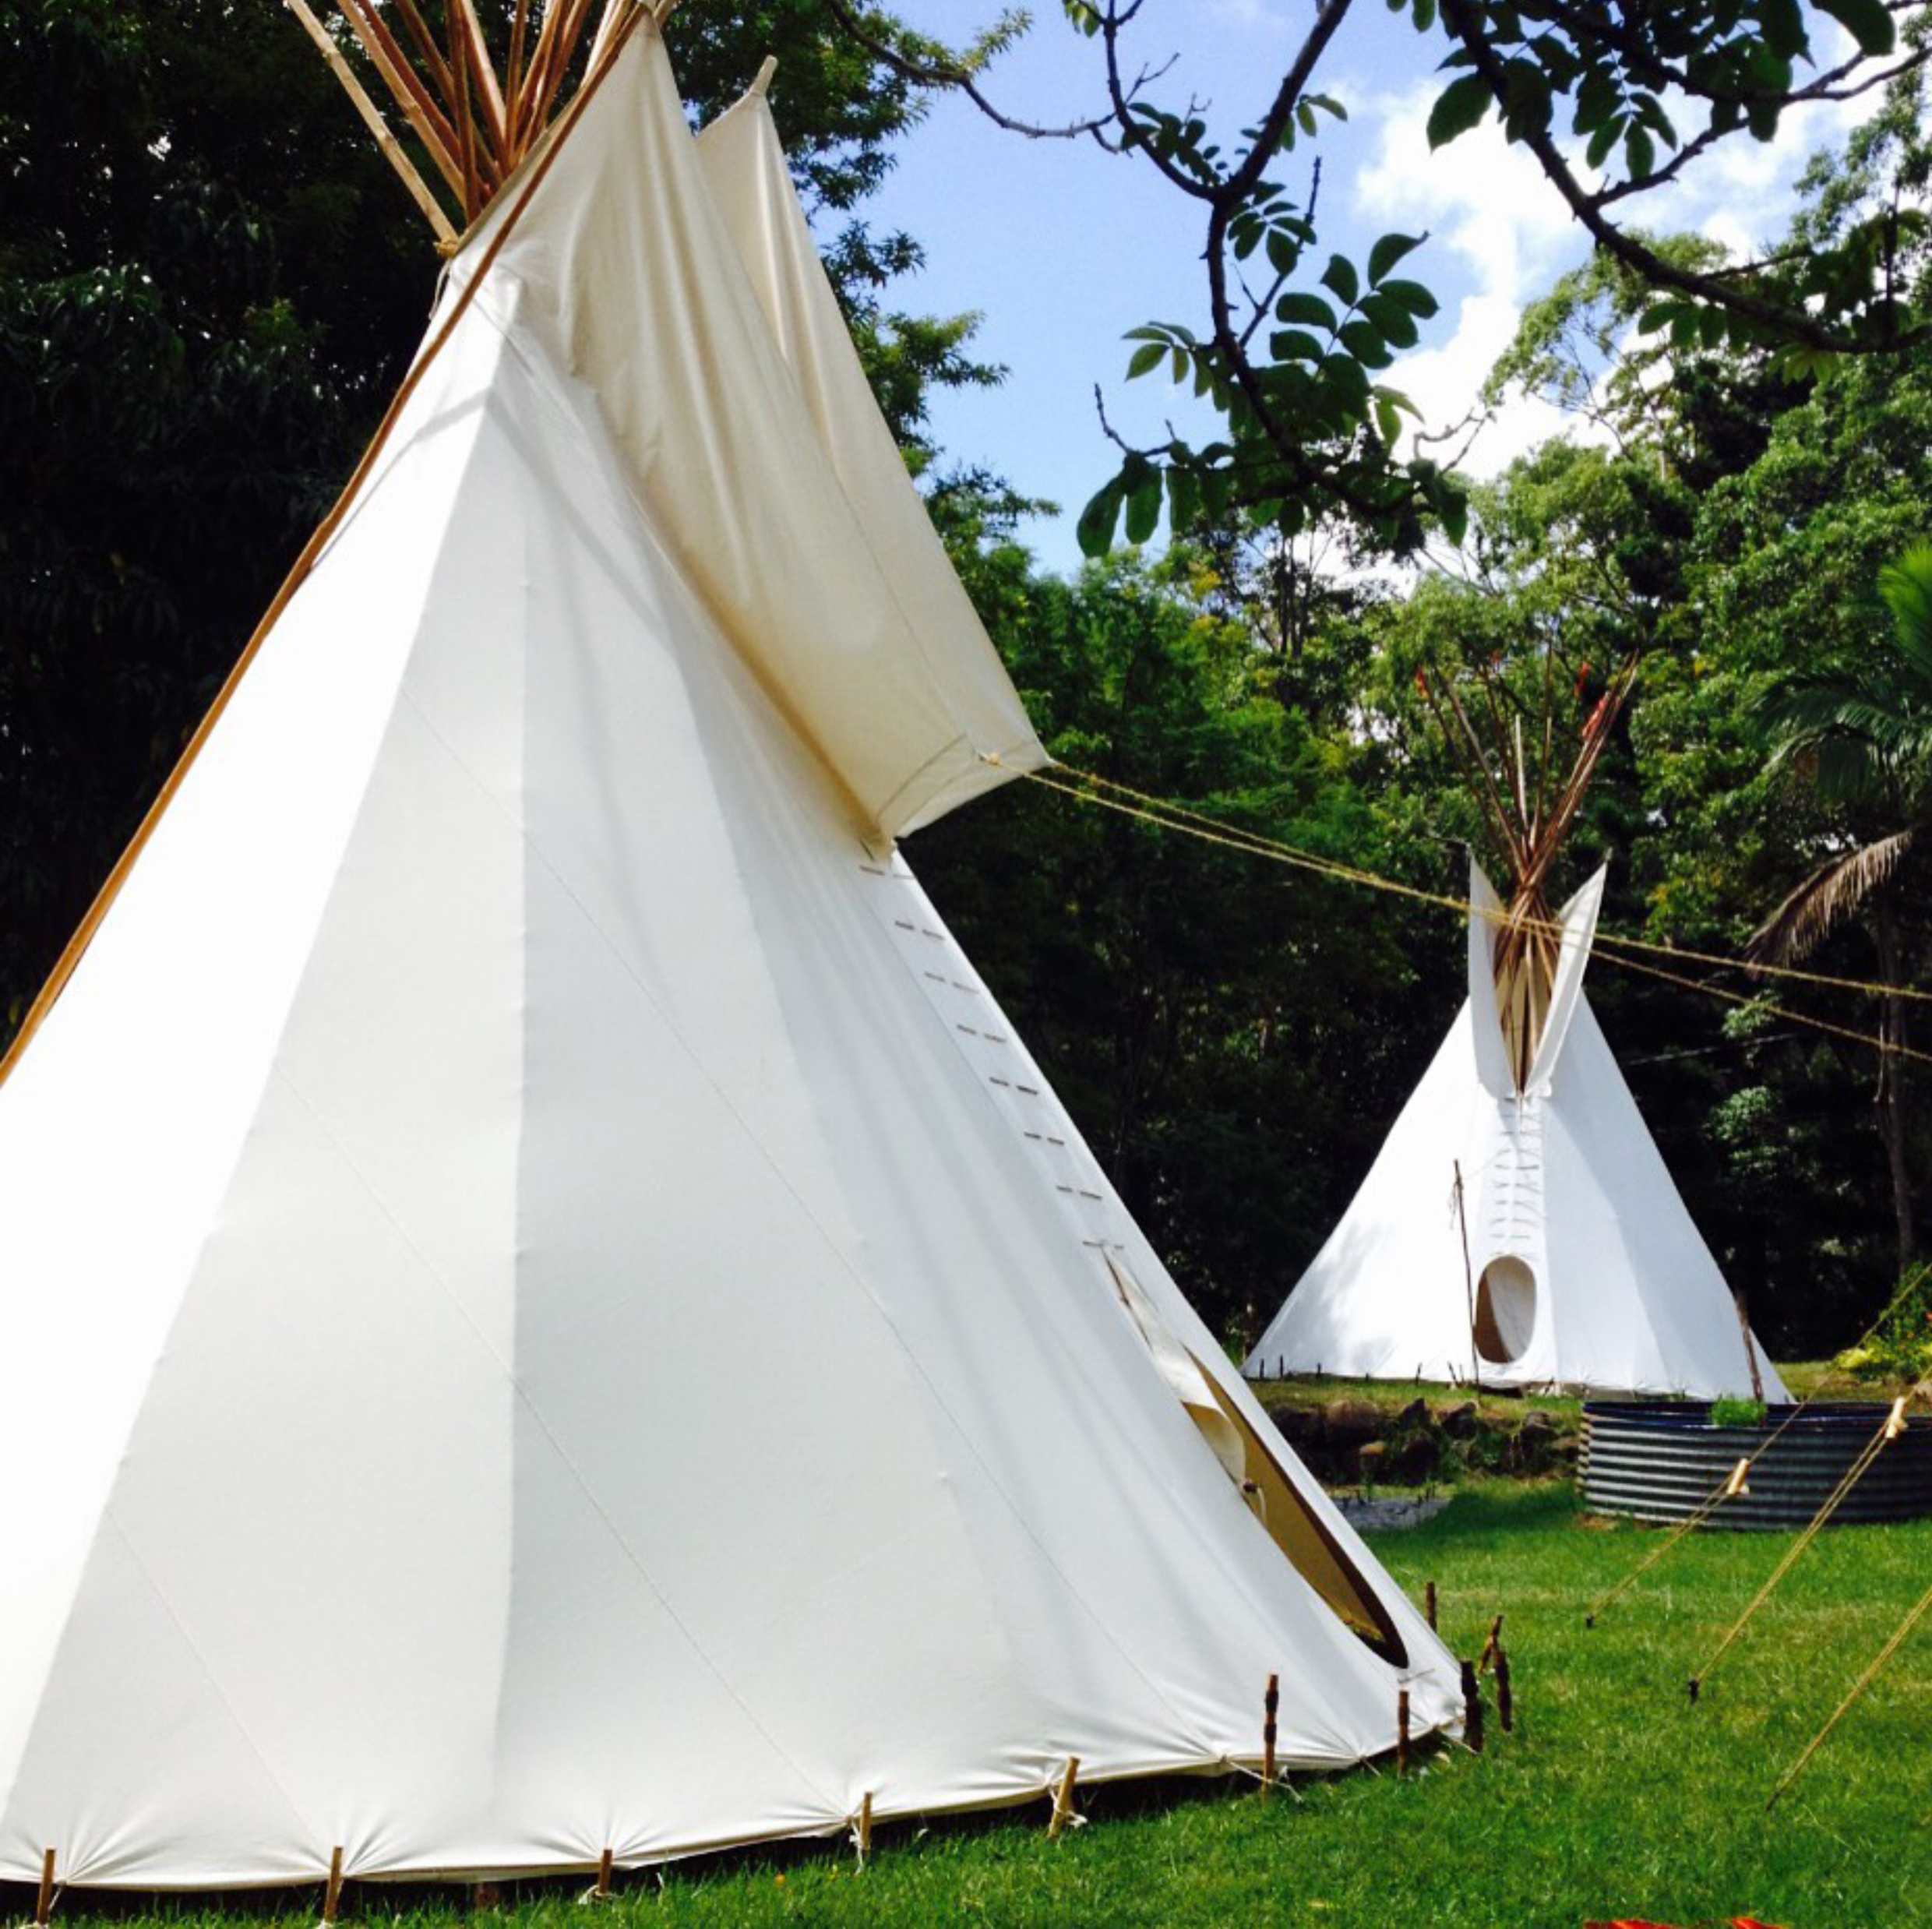 Planning A Tipi Wedding But Not Sure Where To Start